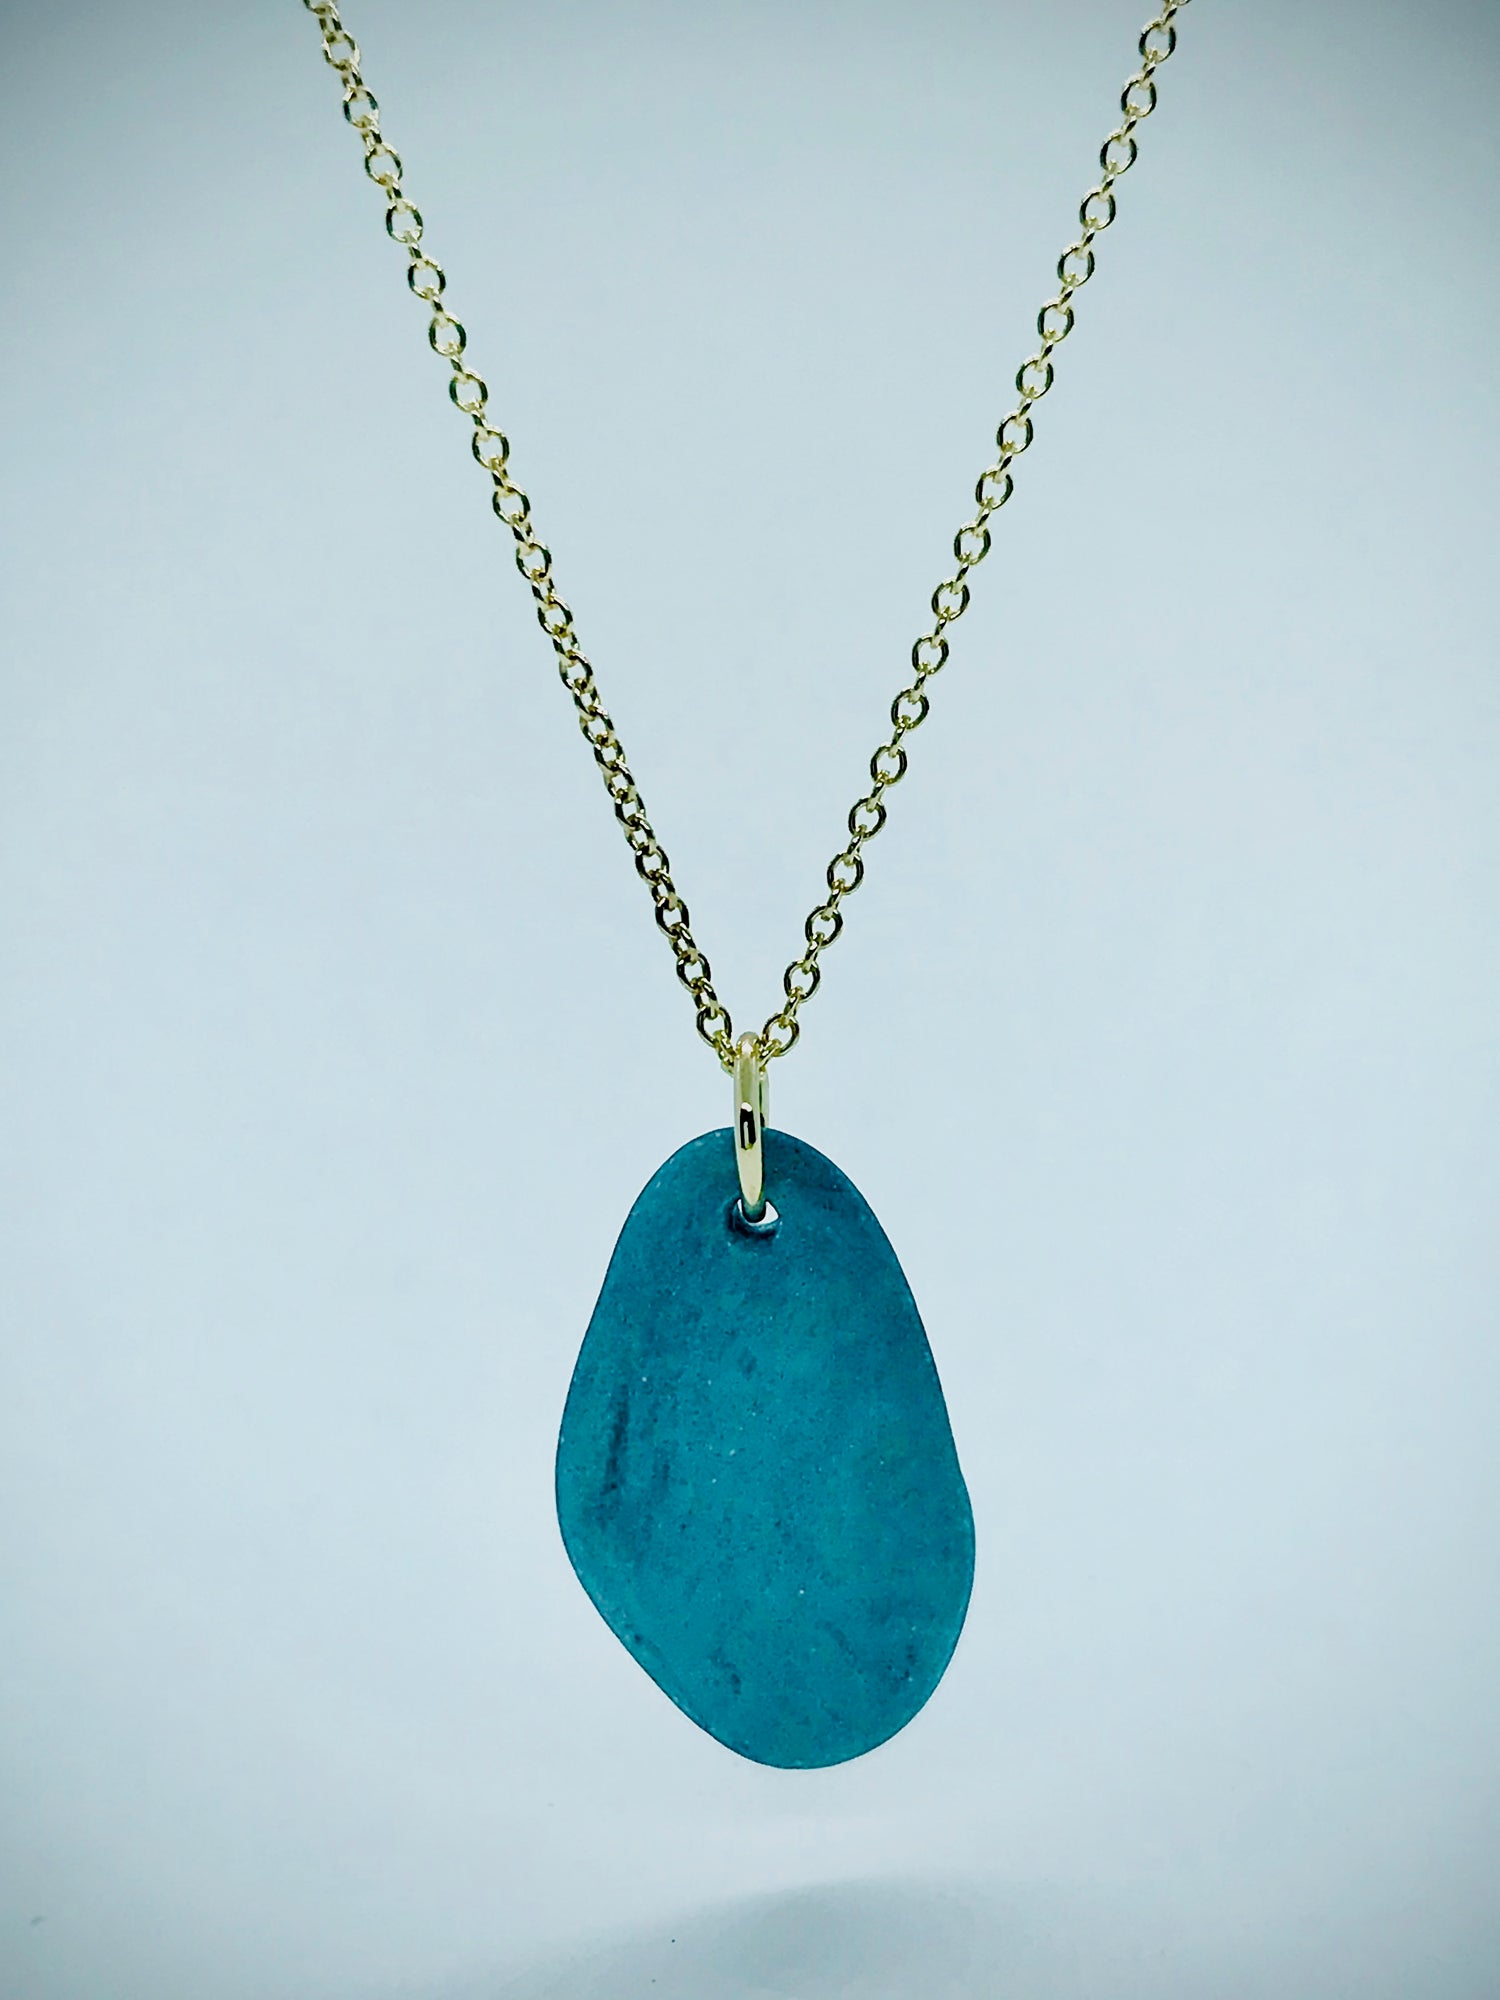 Image of Hudson River Rock on Gold Chain